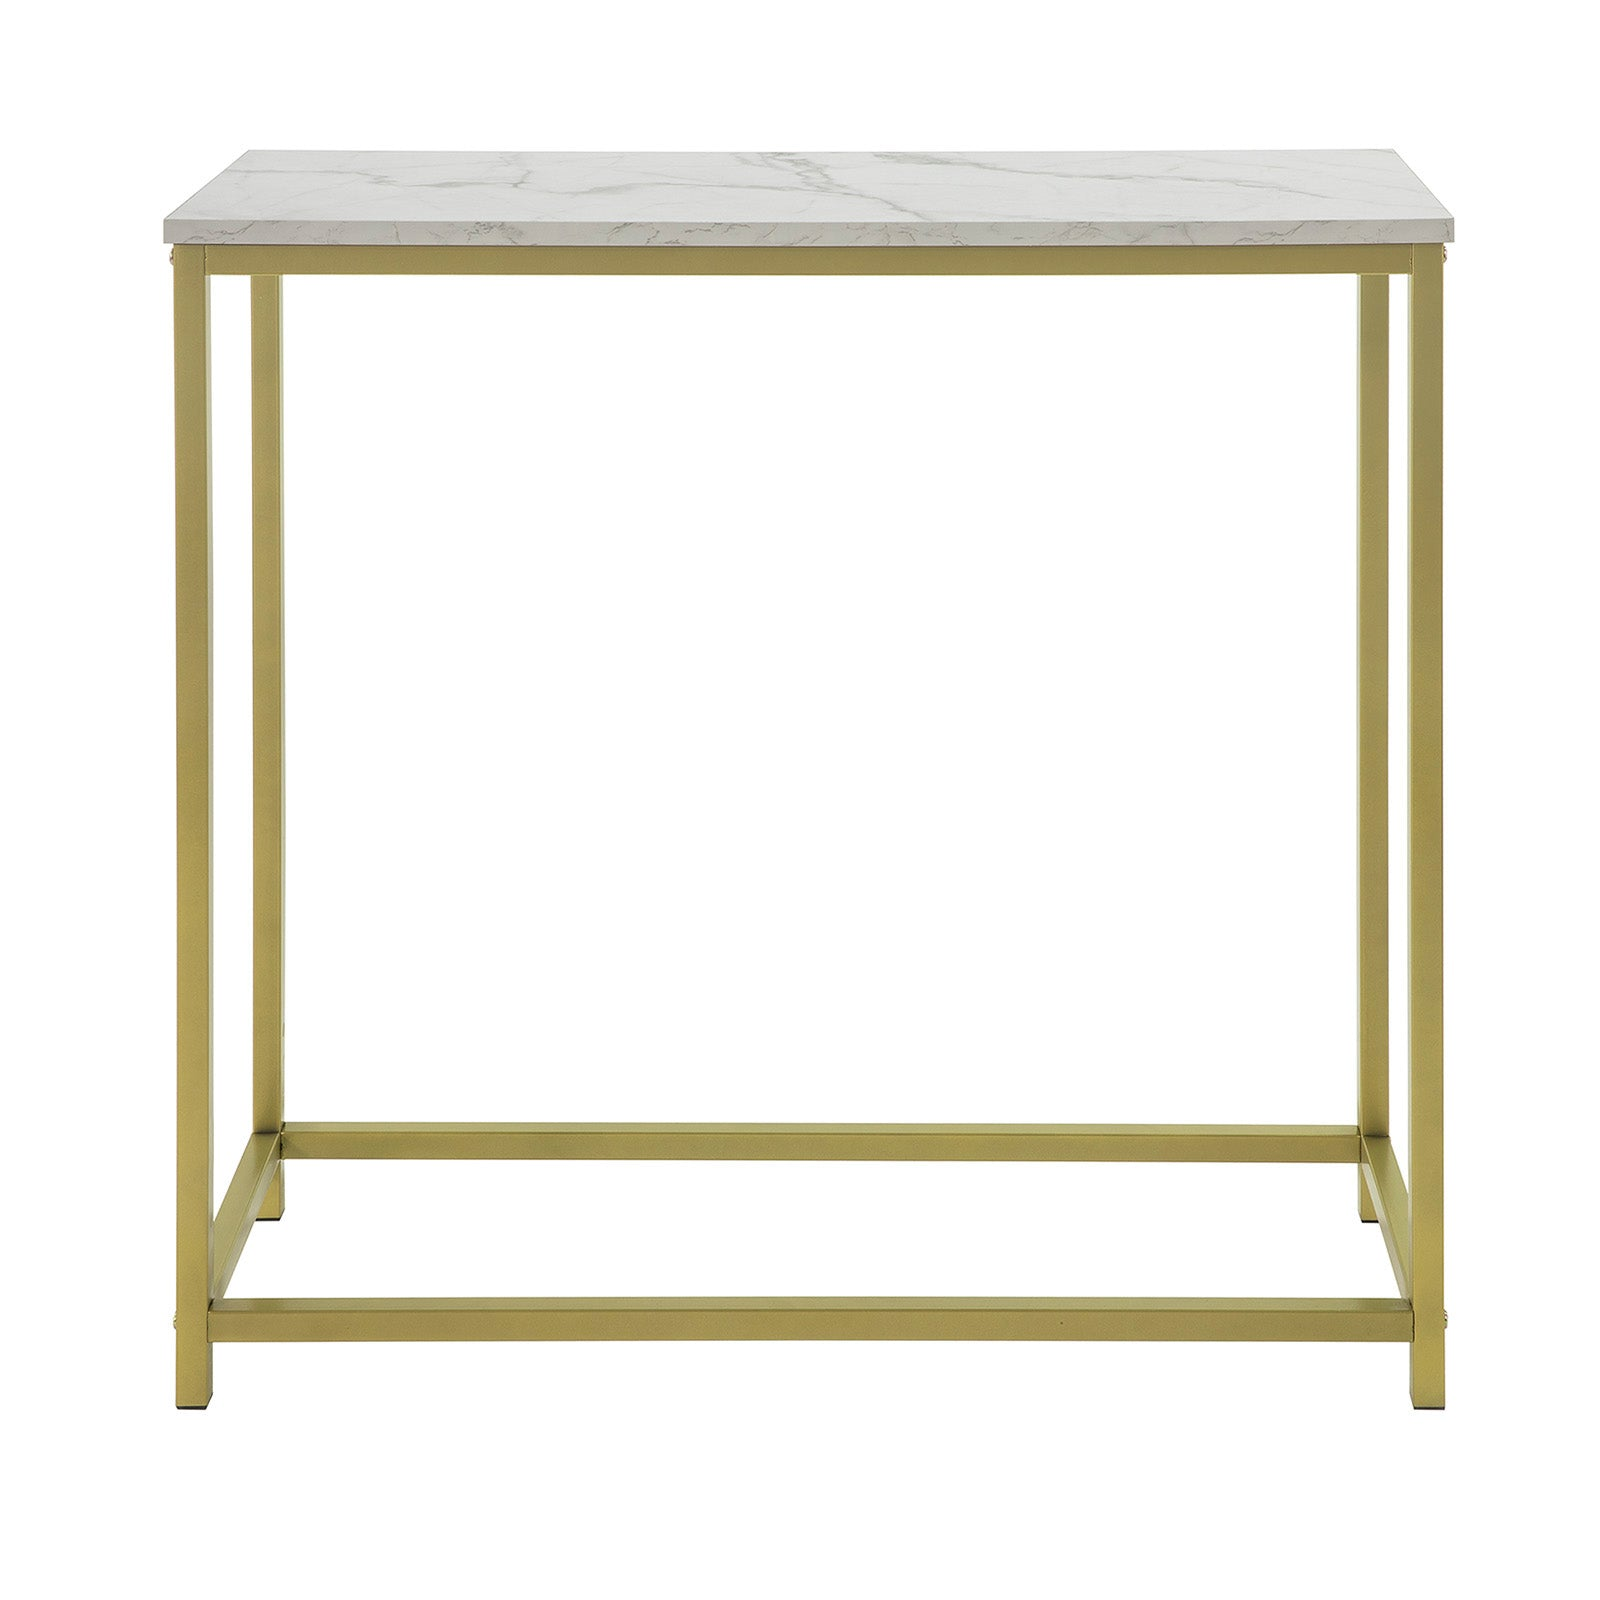 SoBuy Console table Modern Entrance Marble Look Vintage Style L80 * P30 * 75cm FSB29-G